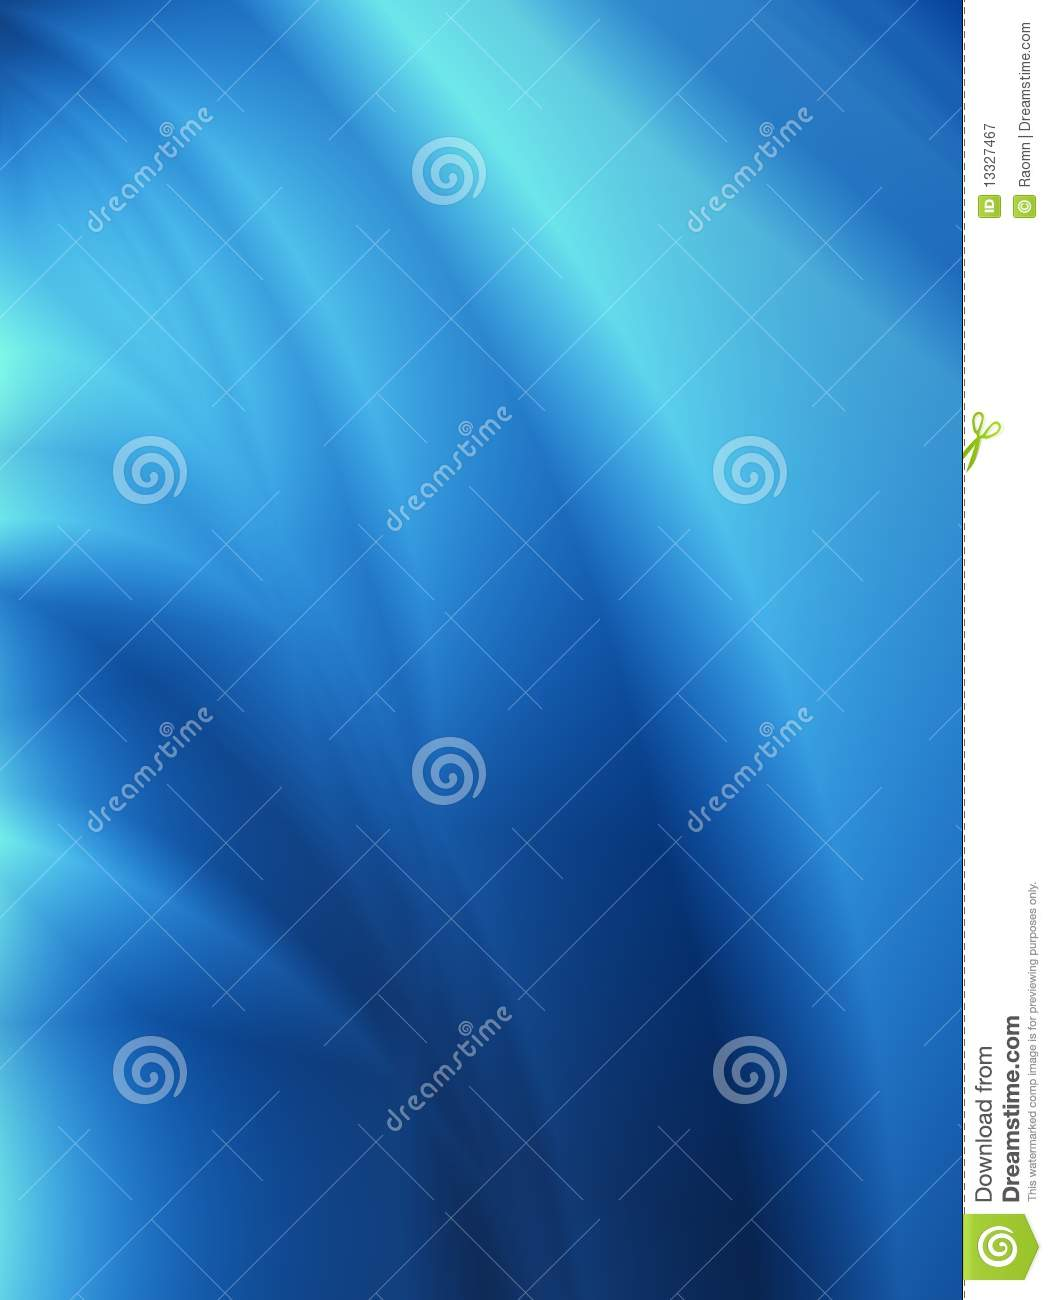 background blue sea abstract website pattern royalty free